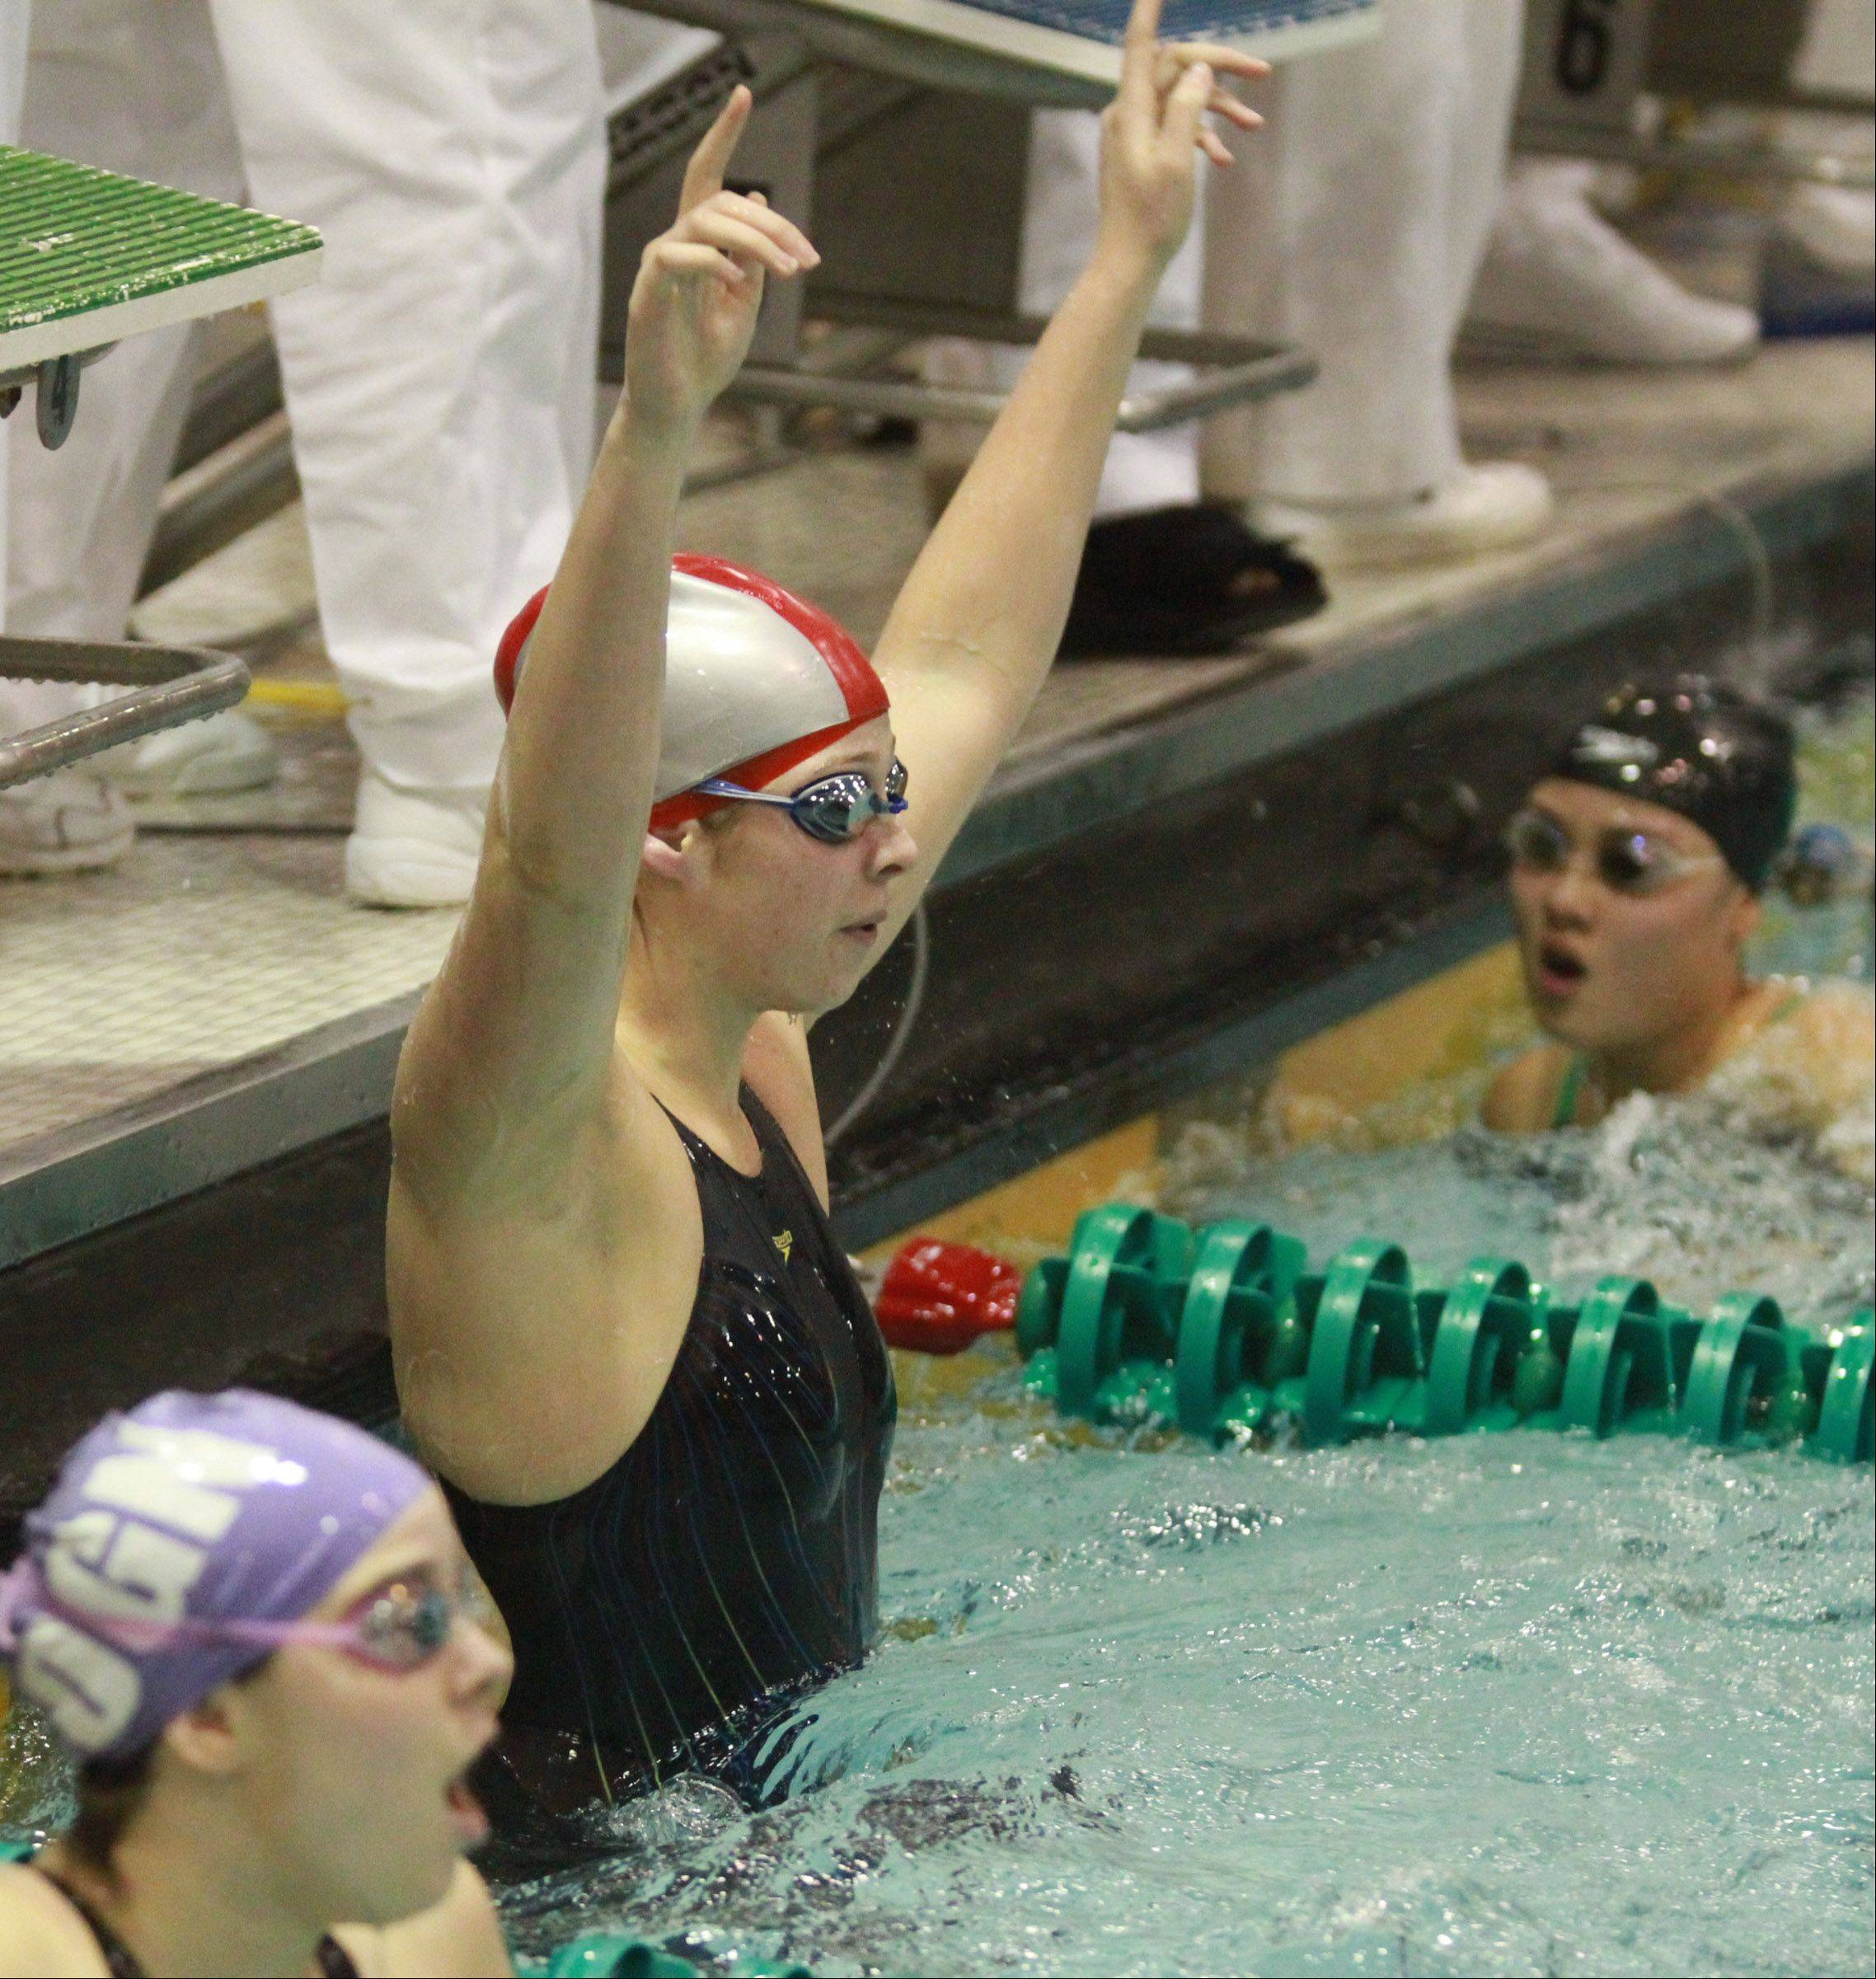 Mundelein's Karrie Kozokar celebrates winning the 200-yard freestyle relay after swimming the anchor leg in the event at the girls swimming state finals on Saturday at New Trier.